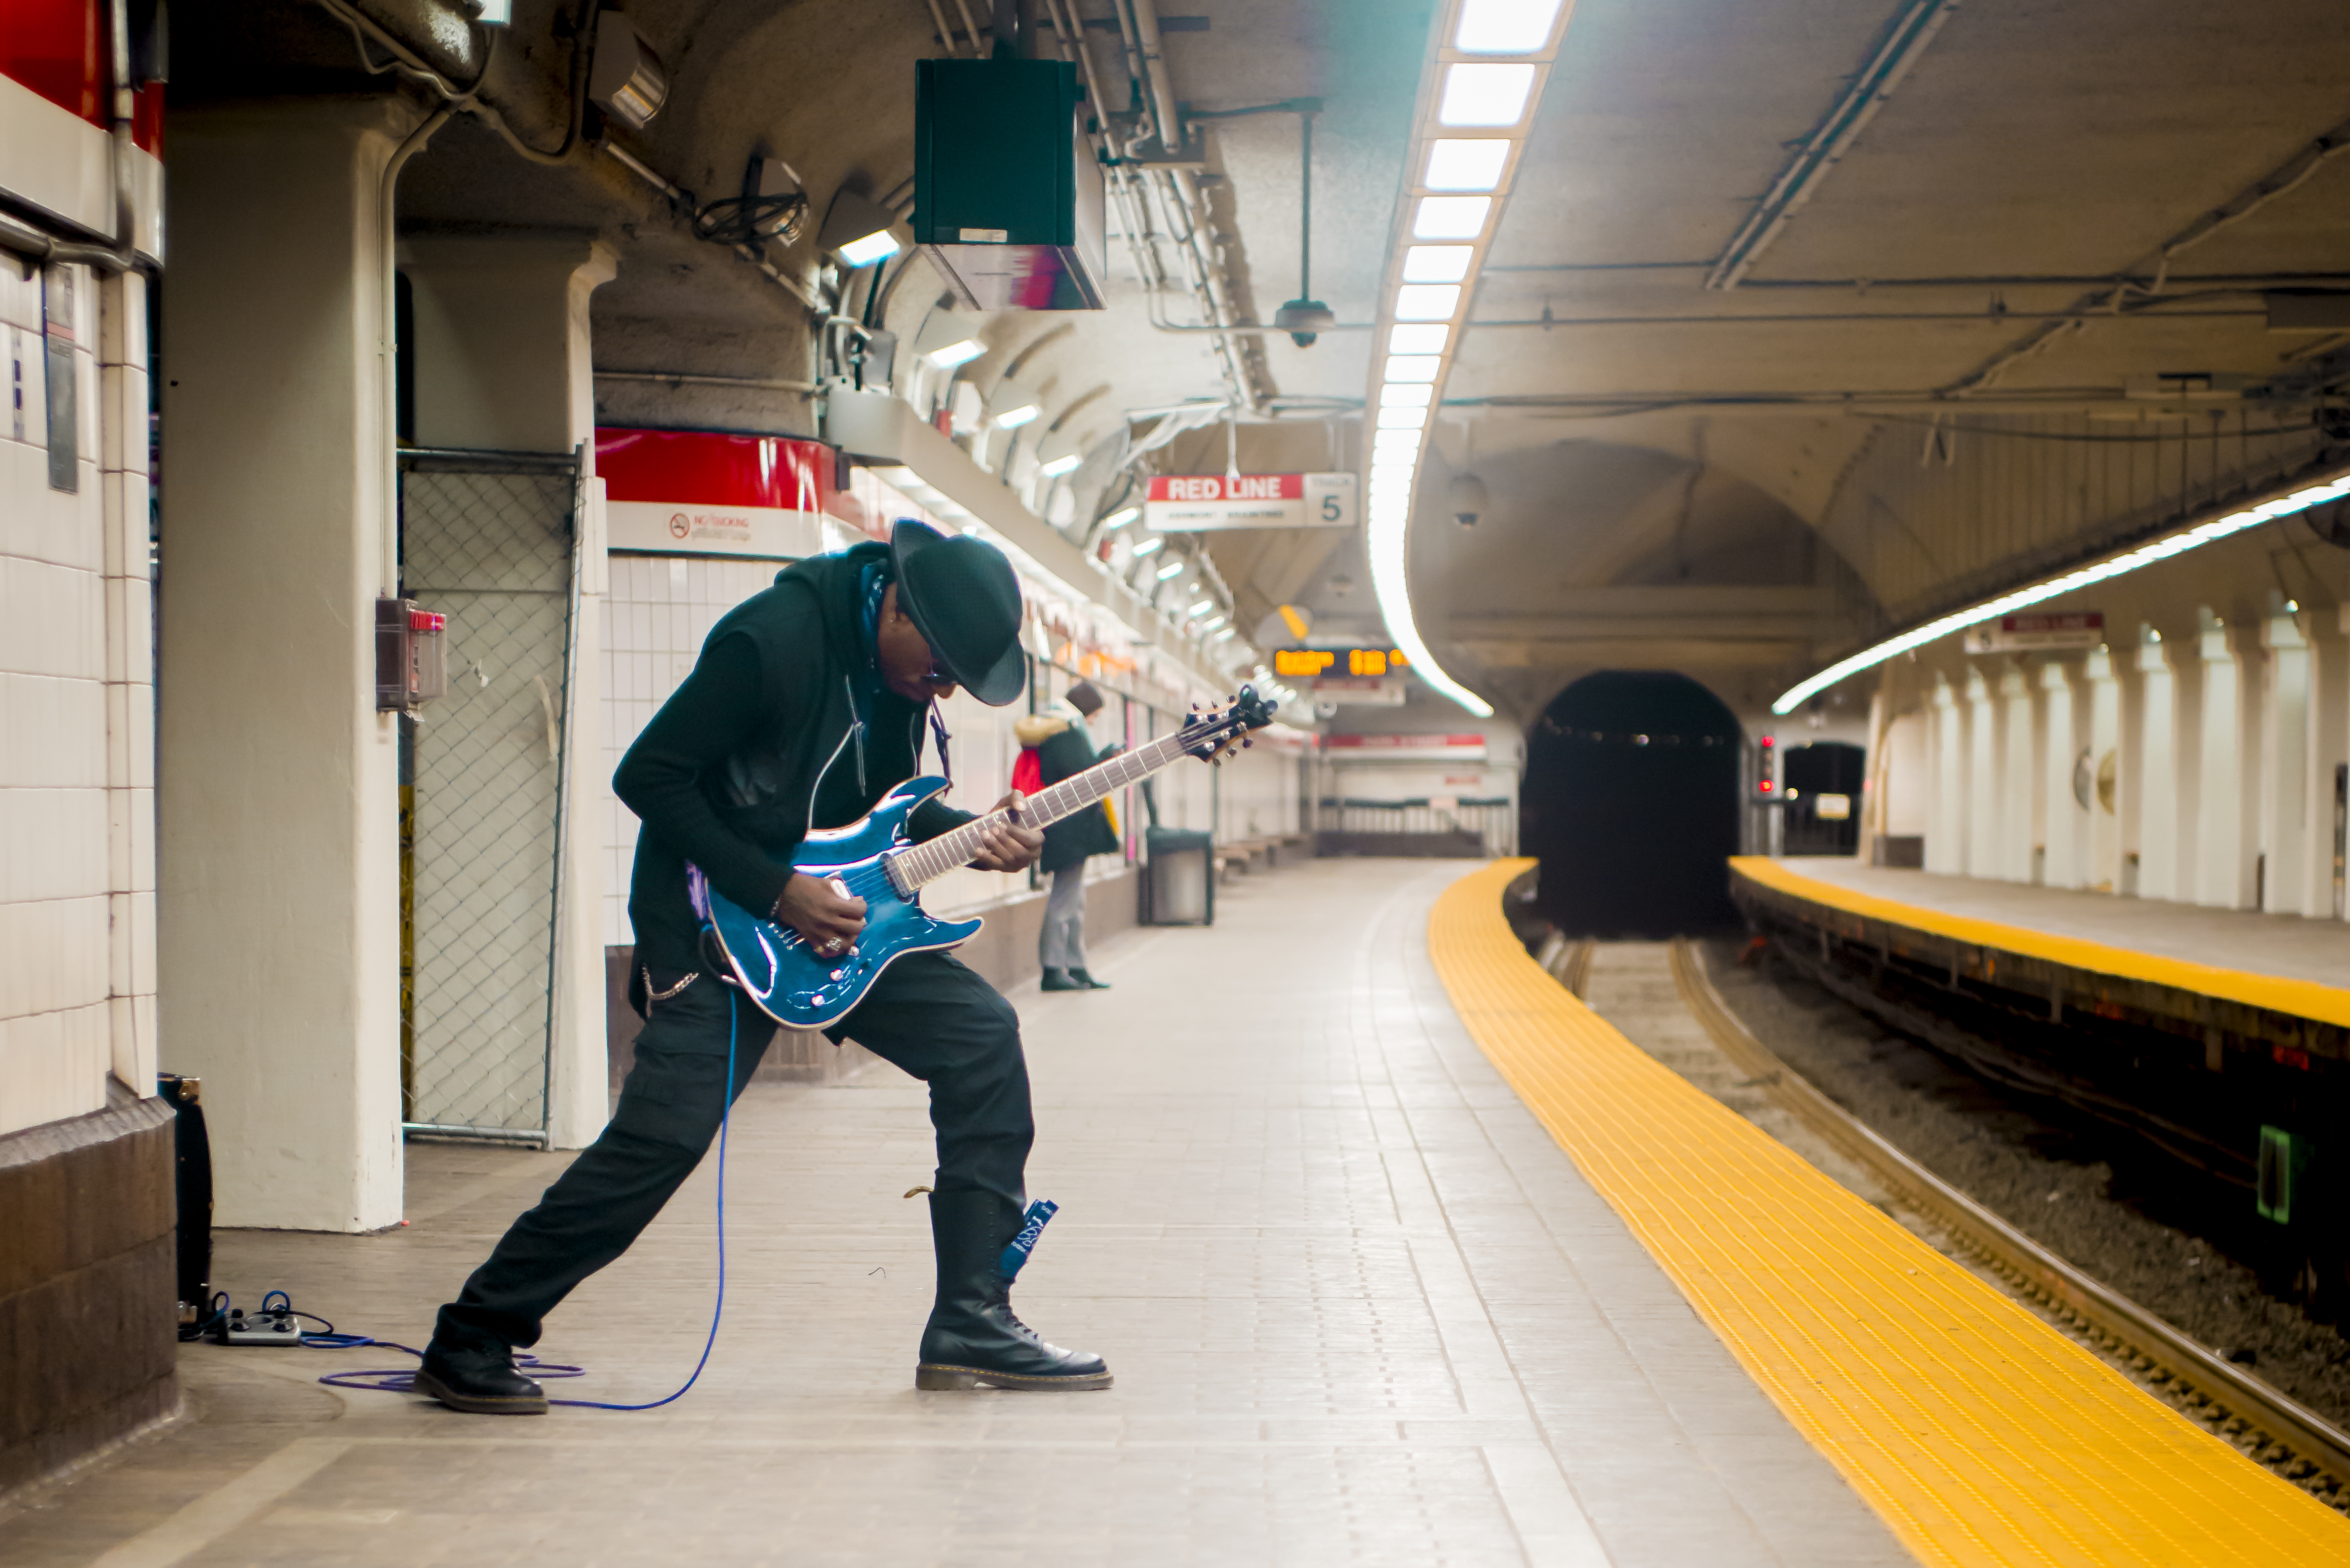 Man playing the guitar at a T stop